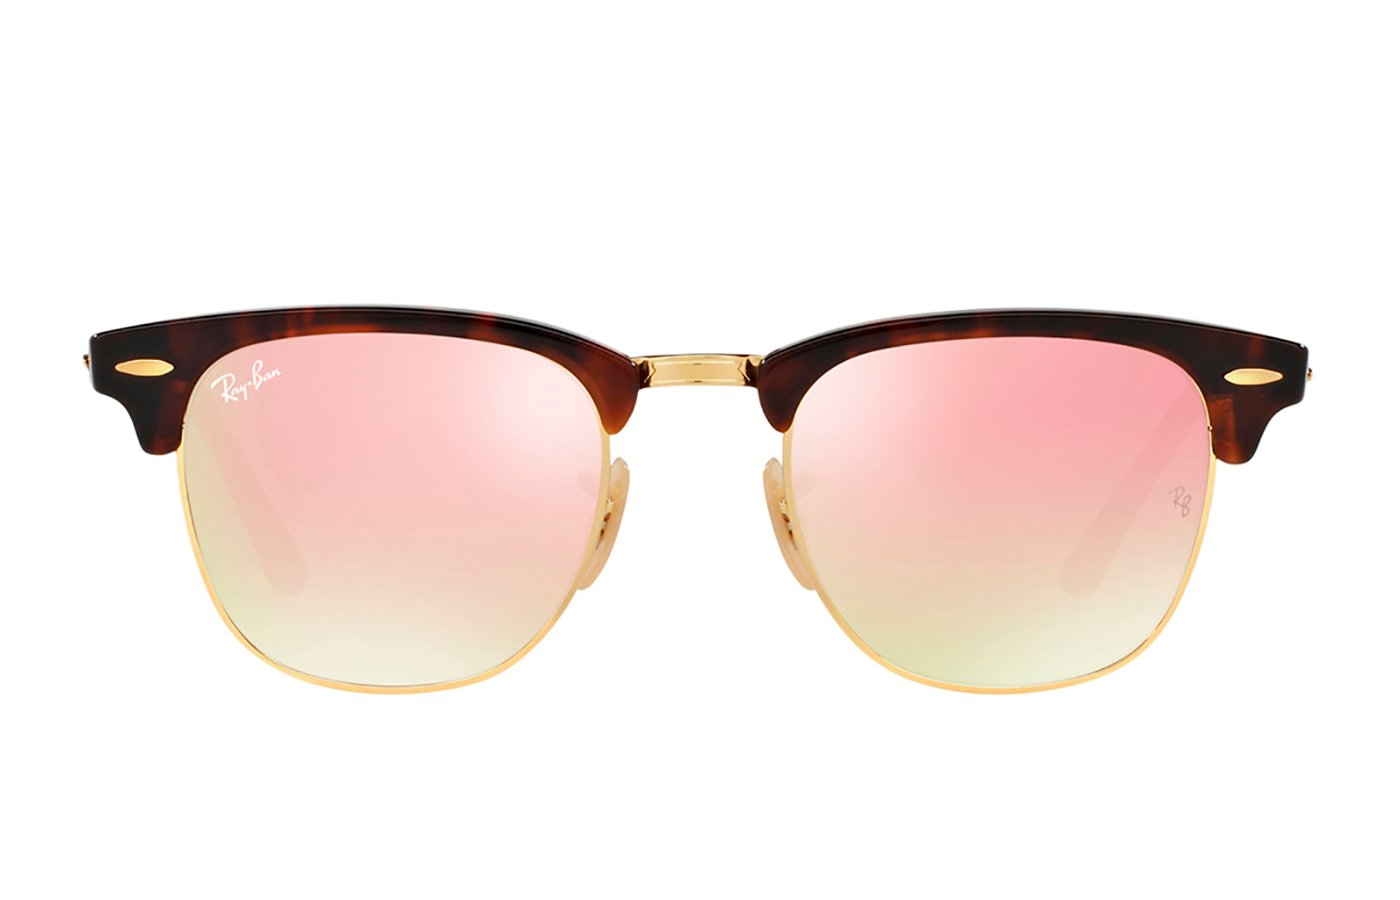 RAY-BAN CLUBMASTER 0RB3016 49 990/7O SHINY RED/HAVANA